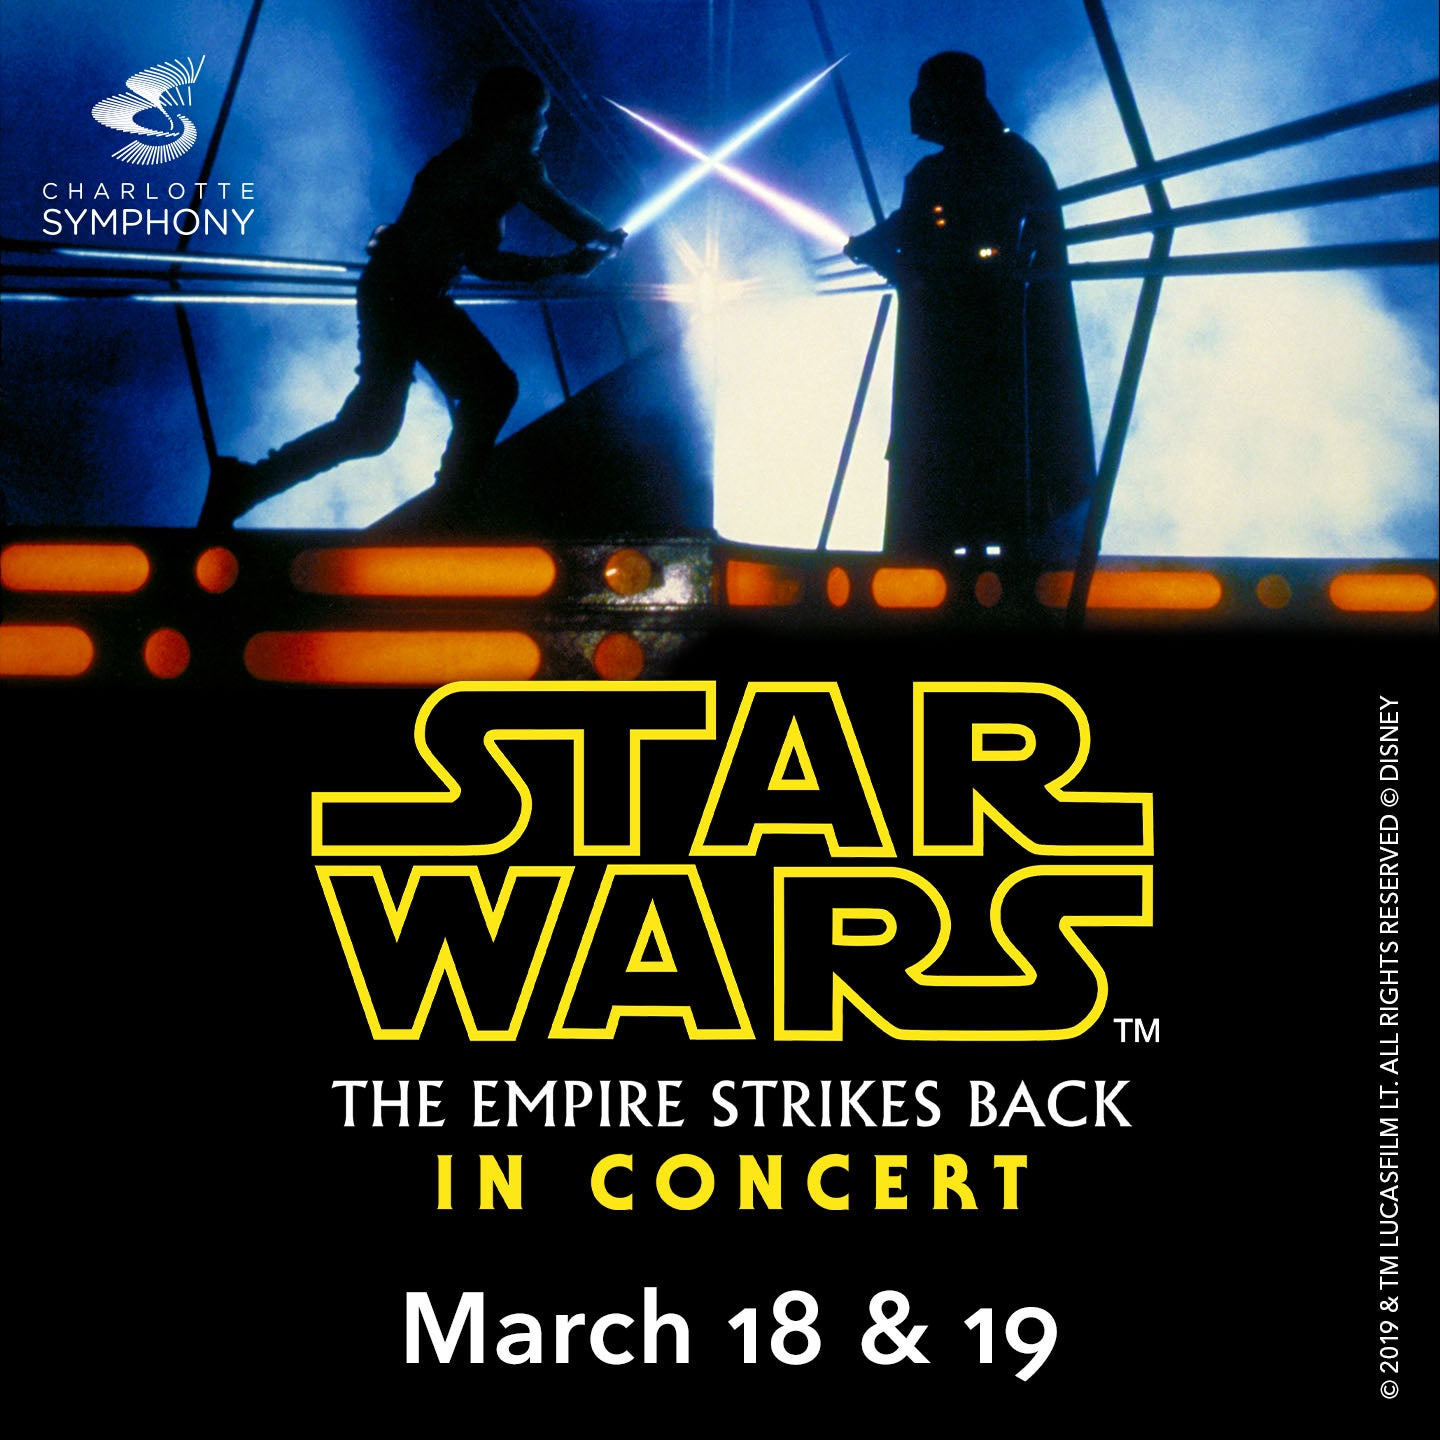 Charlotte Symphony Orchestra presents Star Wars: The Empire Strikes Back in Concert